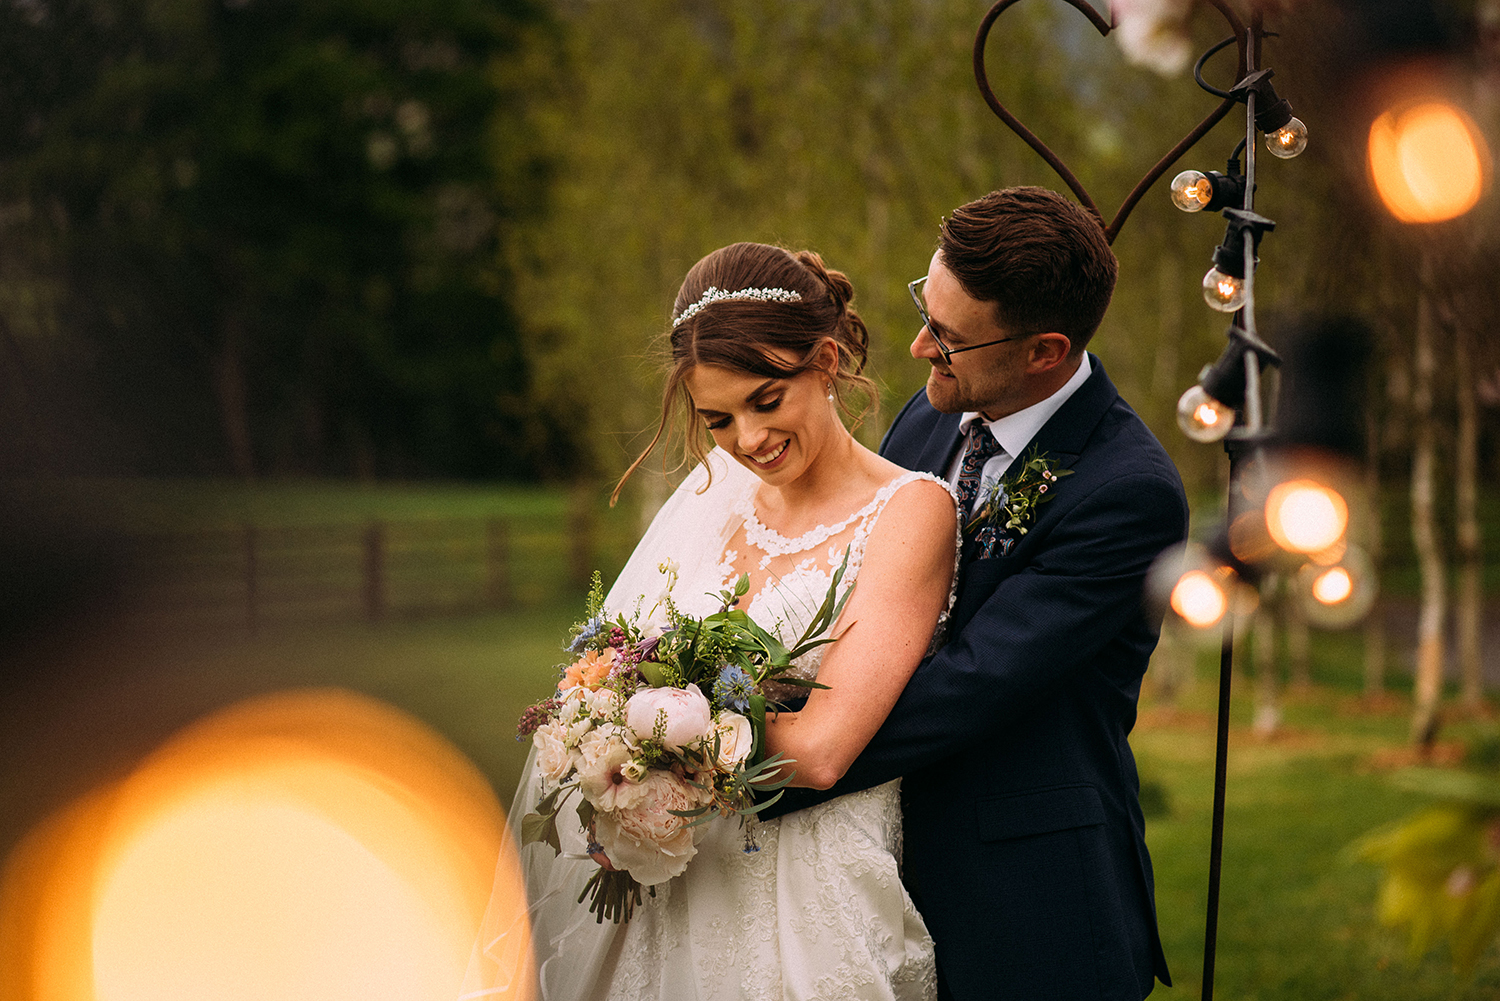 Bride and groom together at the Out barn wedding venue